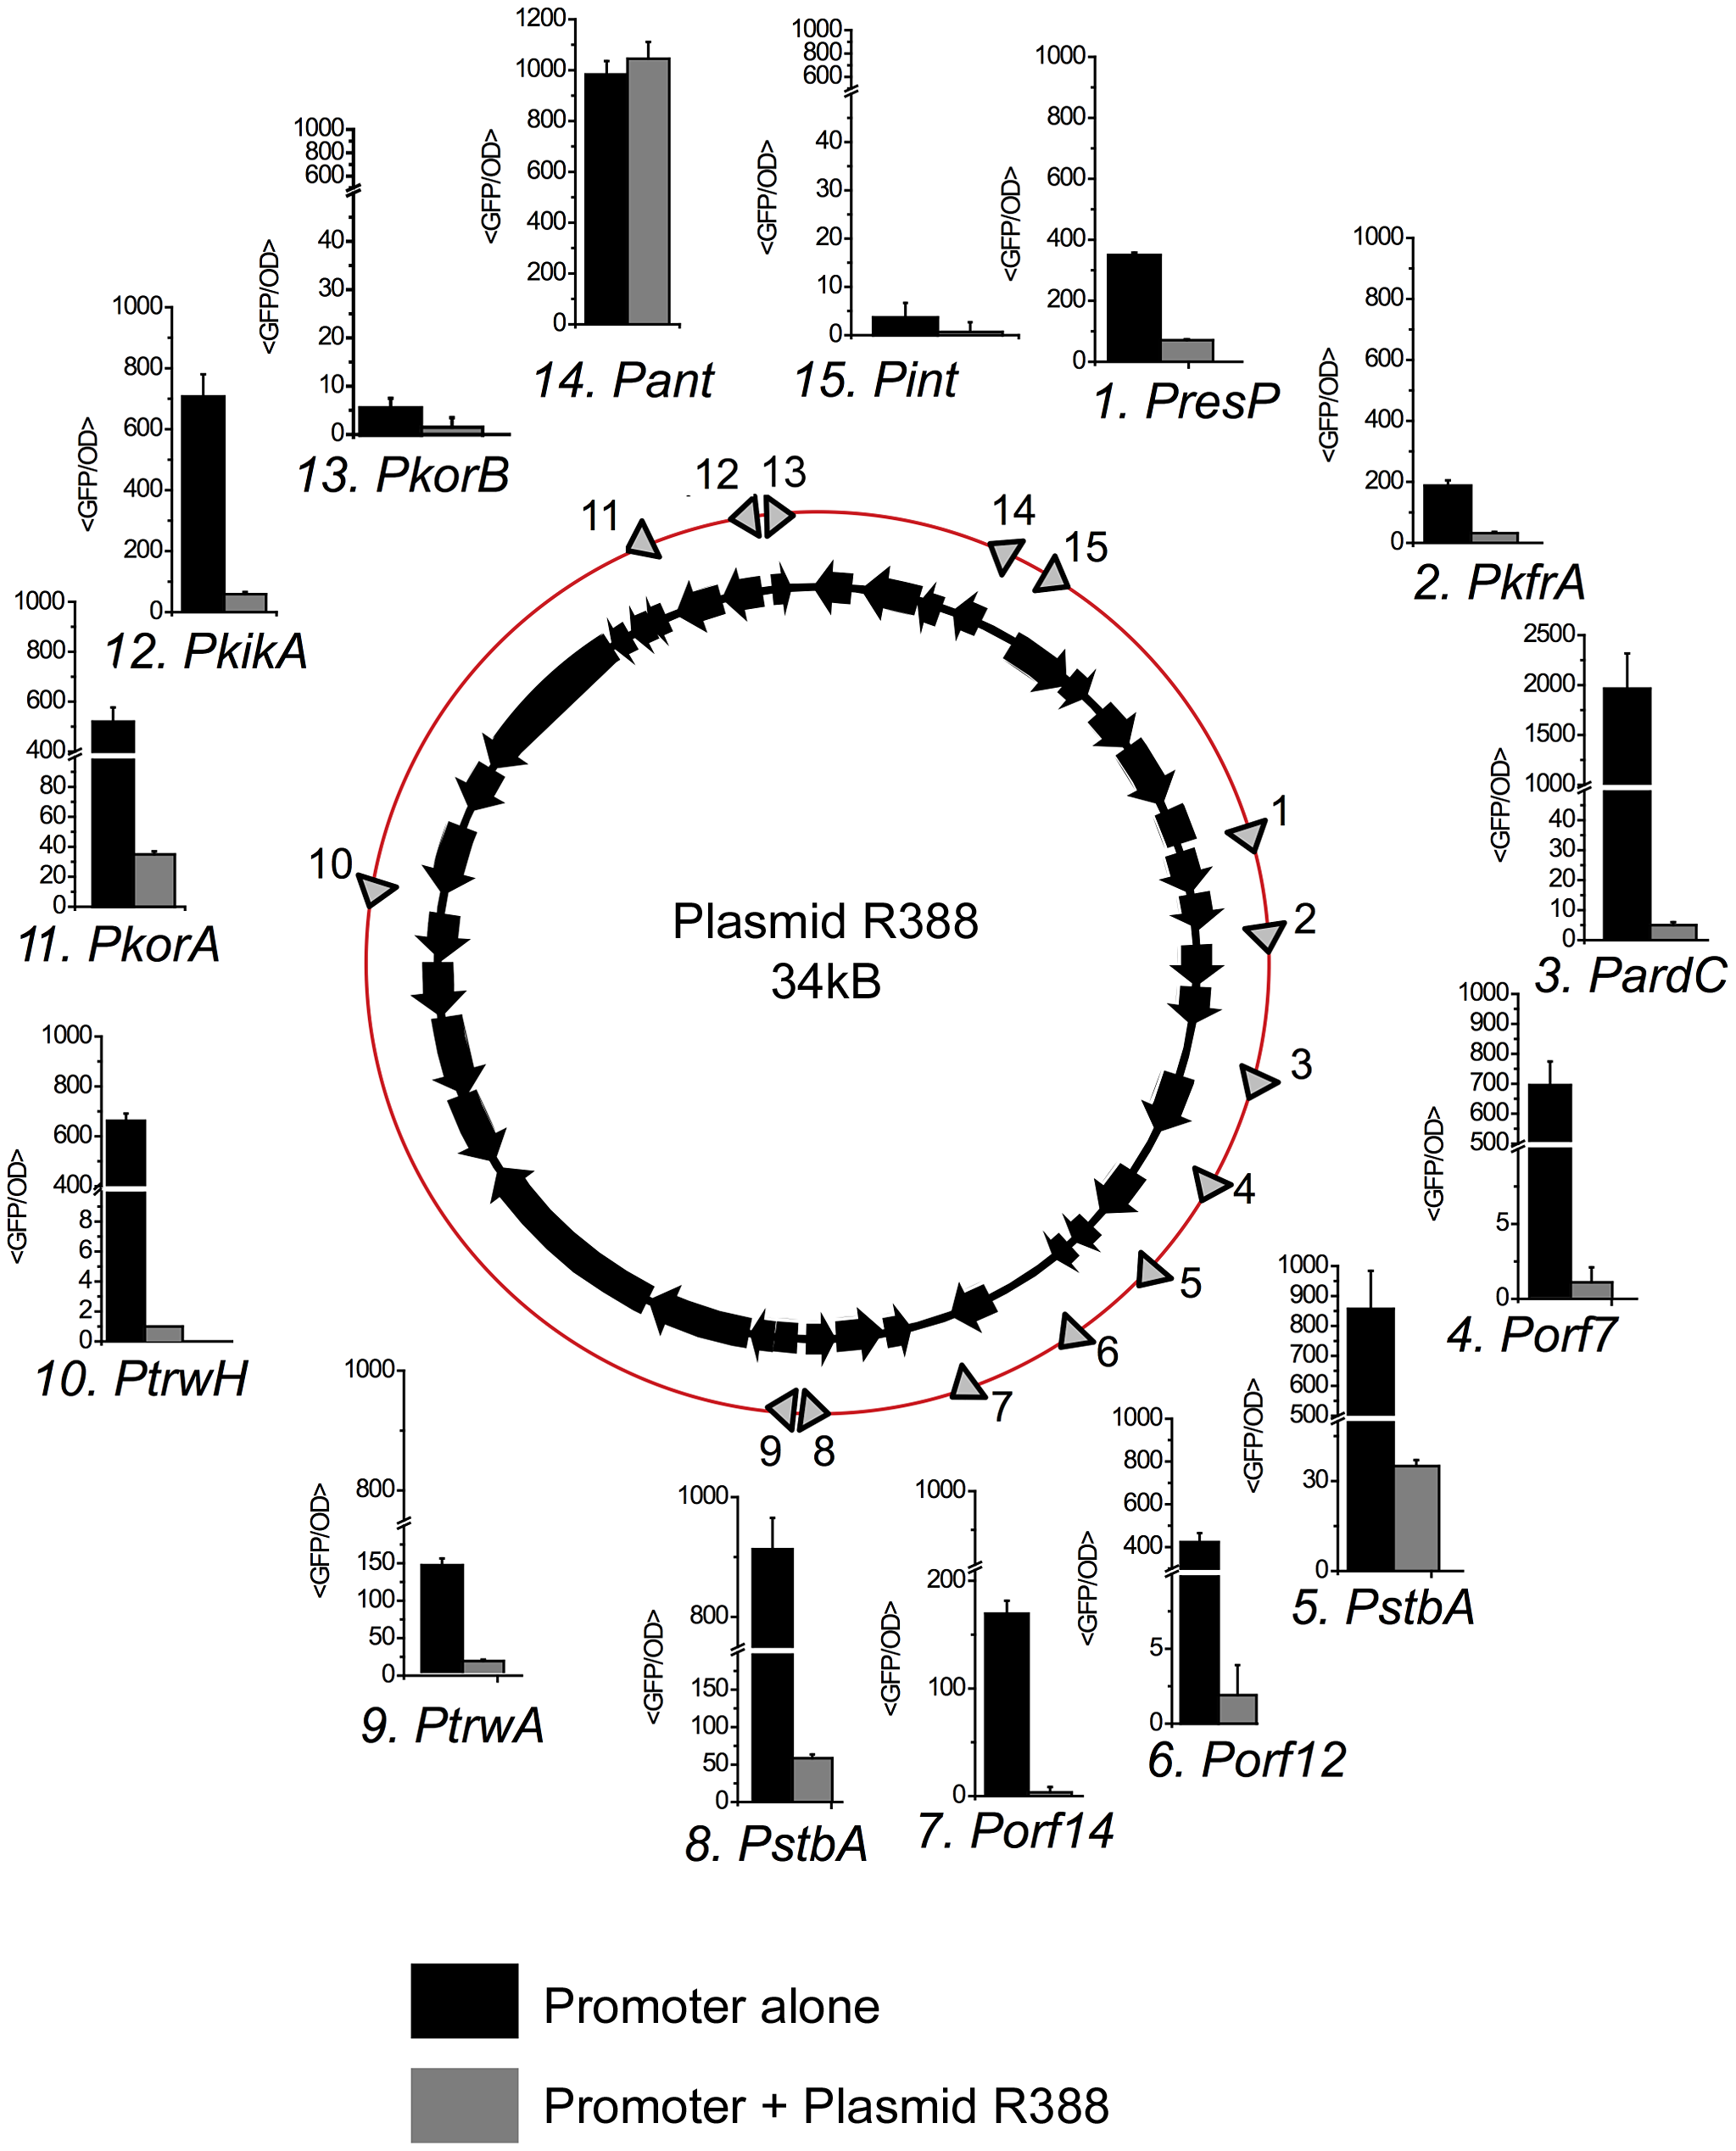 Promoters in plasmid R388.